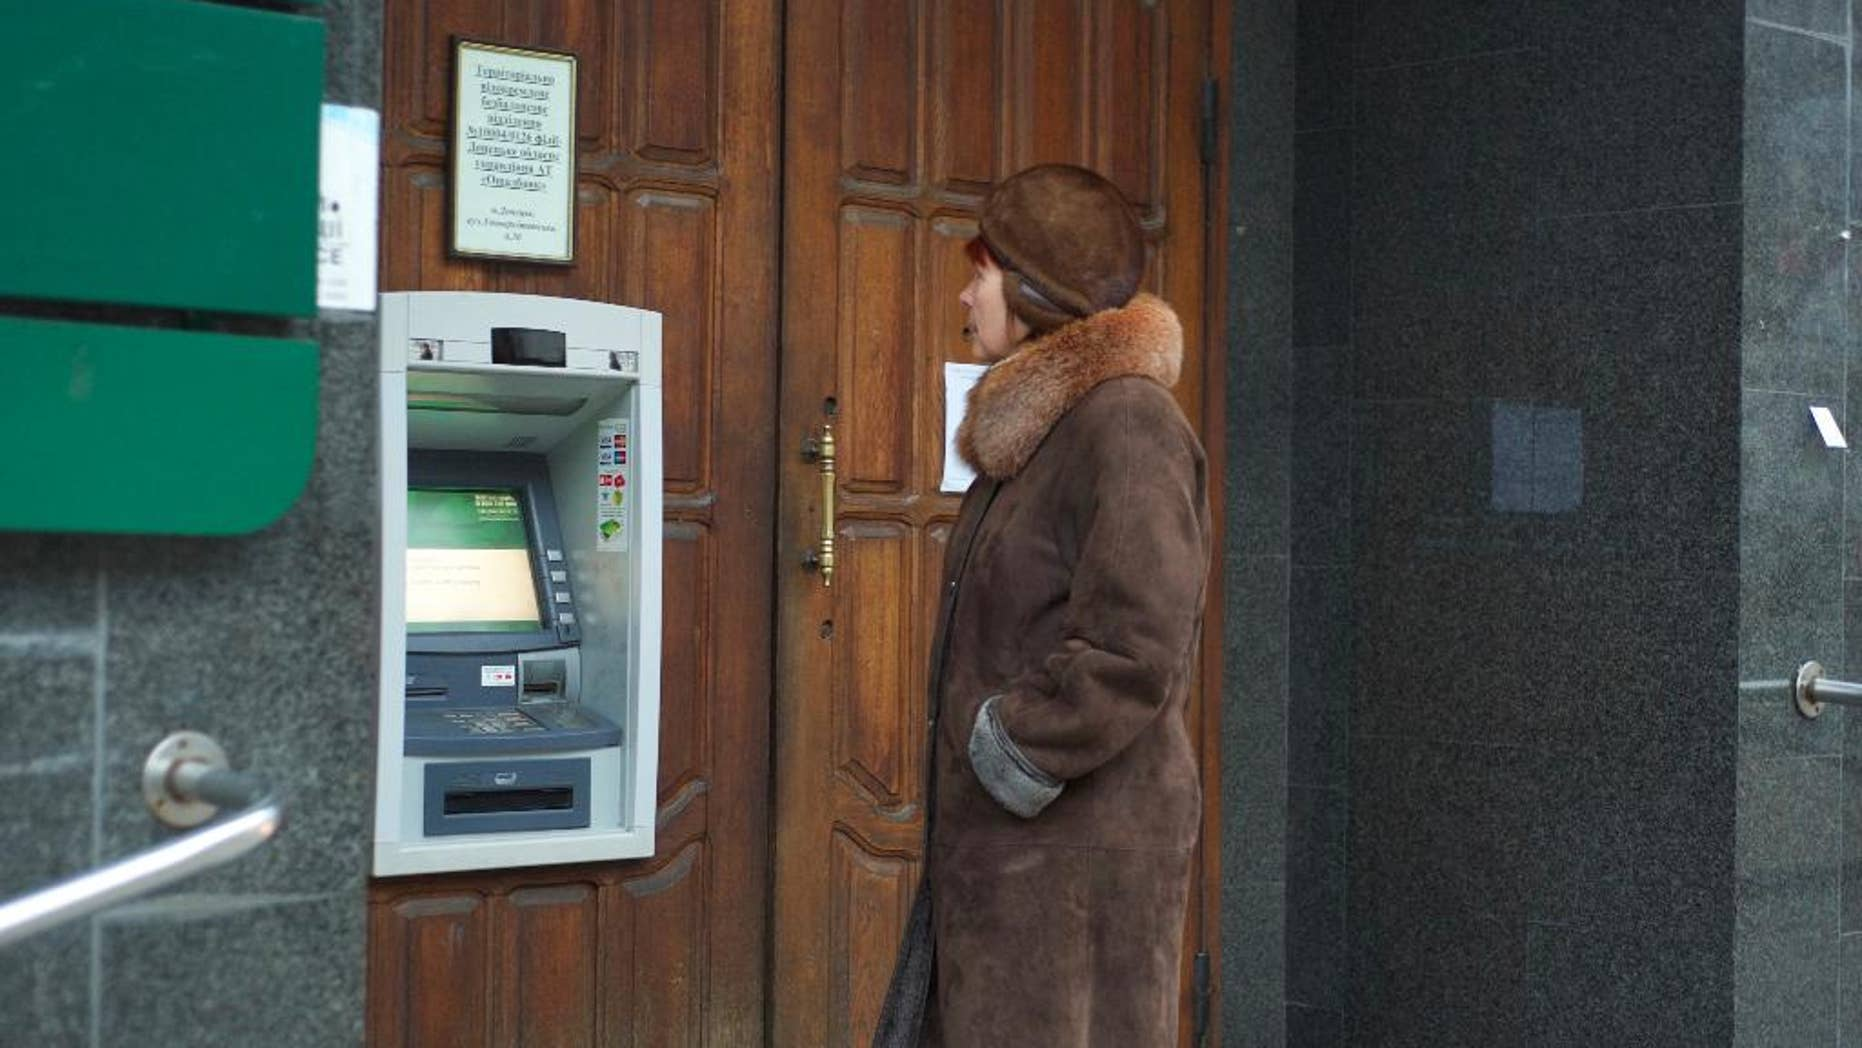 A woman stands at an ATM that doesn't work outside a Ukrainian bank in Donetsk, eastern Ukraine, Tuesday, Nov. 25, 2014. Money is running short in the rebel heartland since the government announced this month that it will suspend banking services as it piles on the pressure. Almost all ATMs have stopped working and the remainder are expected to stop operating over the next two weeks. (AP Photo/Balint Szlanko)